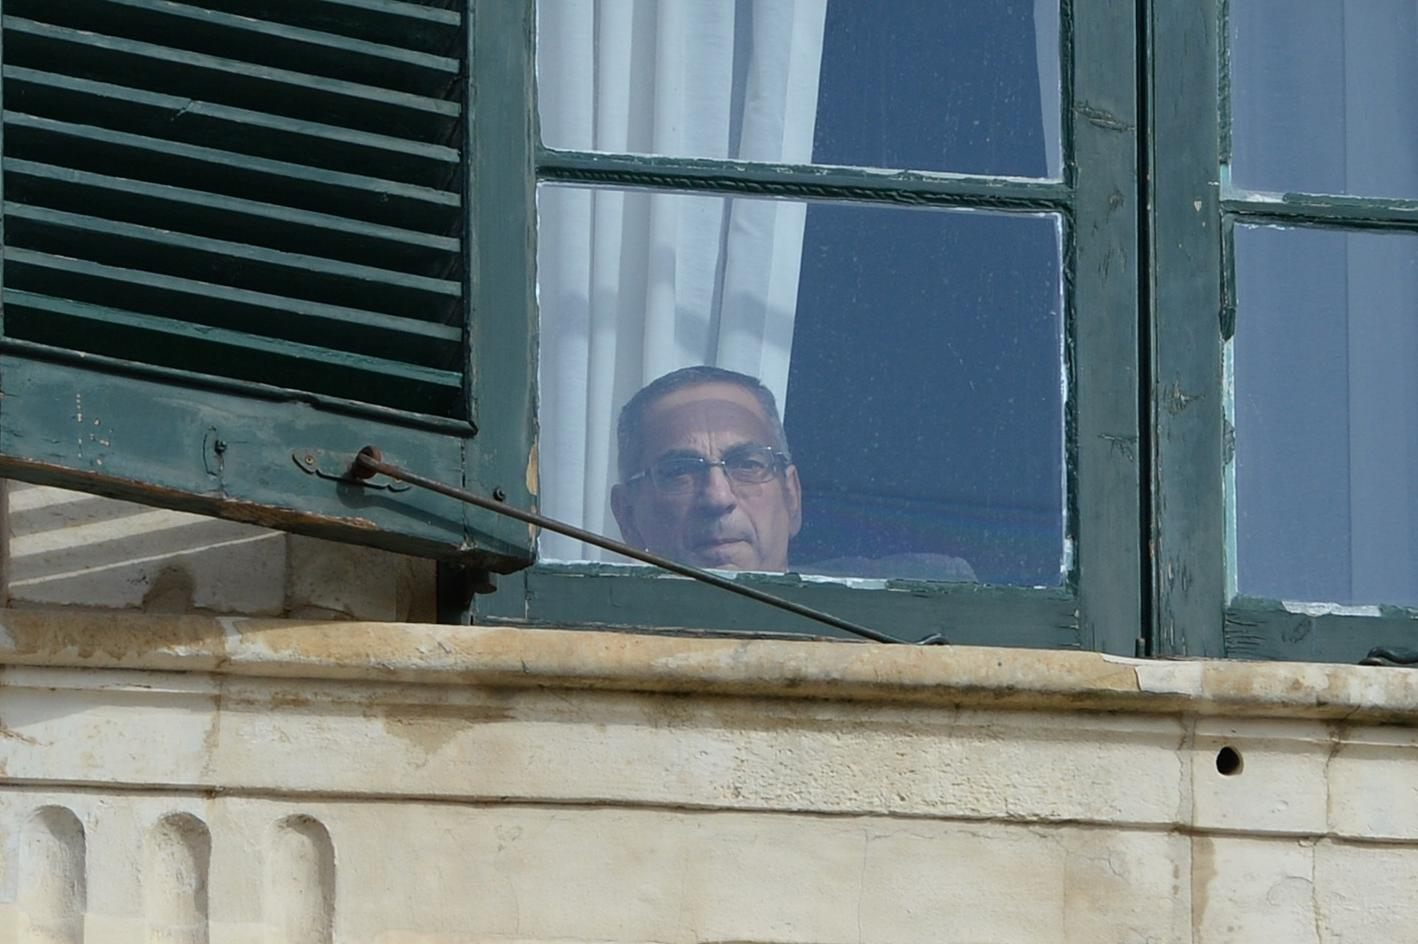 Minister Joe Mizzi looks out of a window at the Auberge de Castille. Photo: Matthew Mirabelli